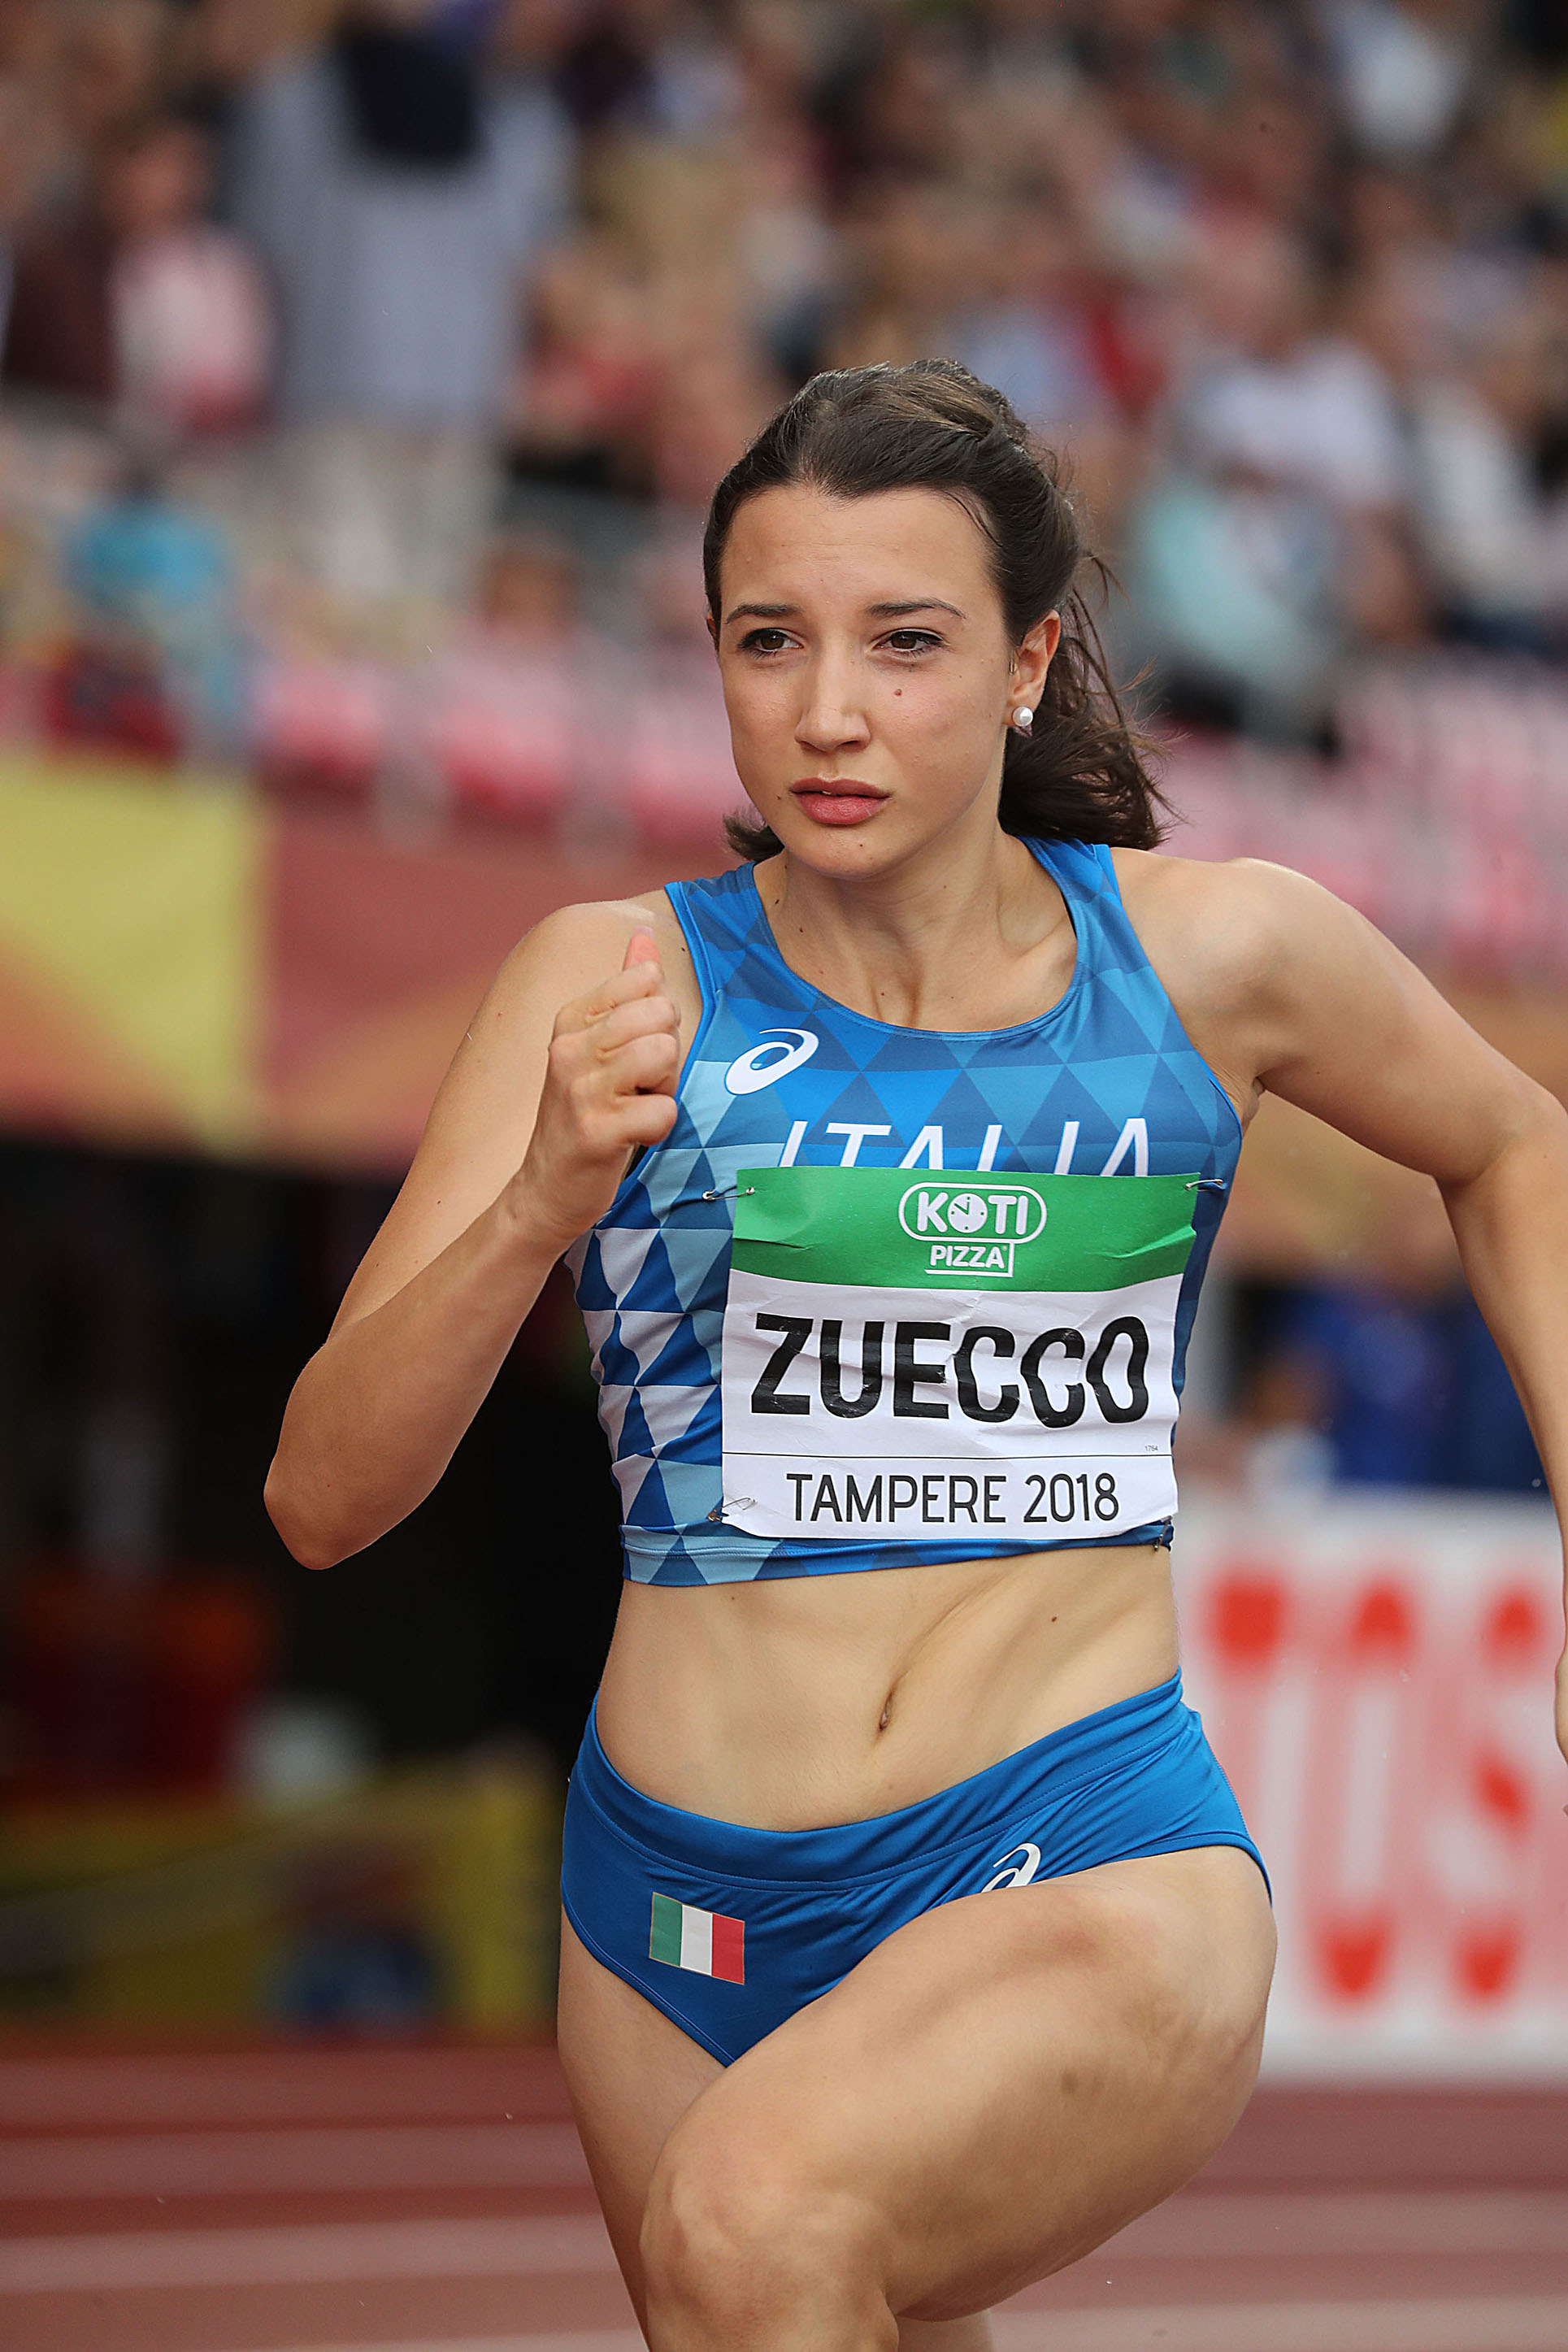 Campionati Mondiali under 20 di atletica Tampere,IAAF World U20 Championships Tampere 2018